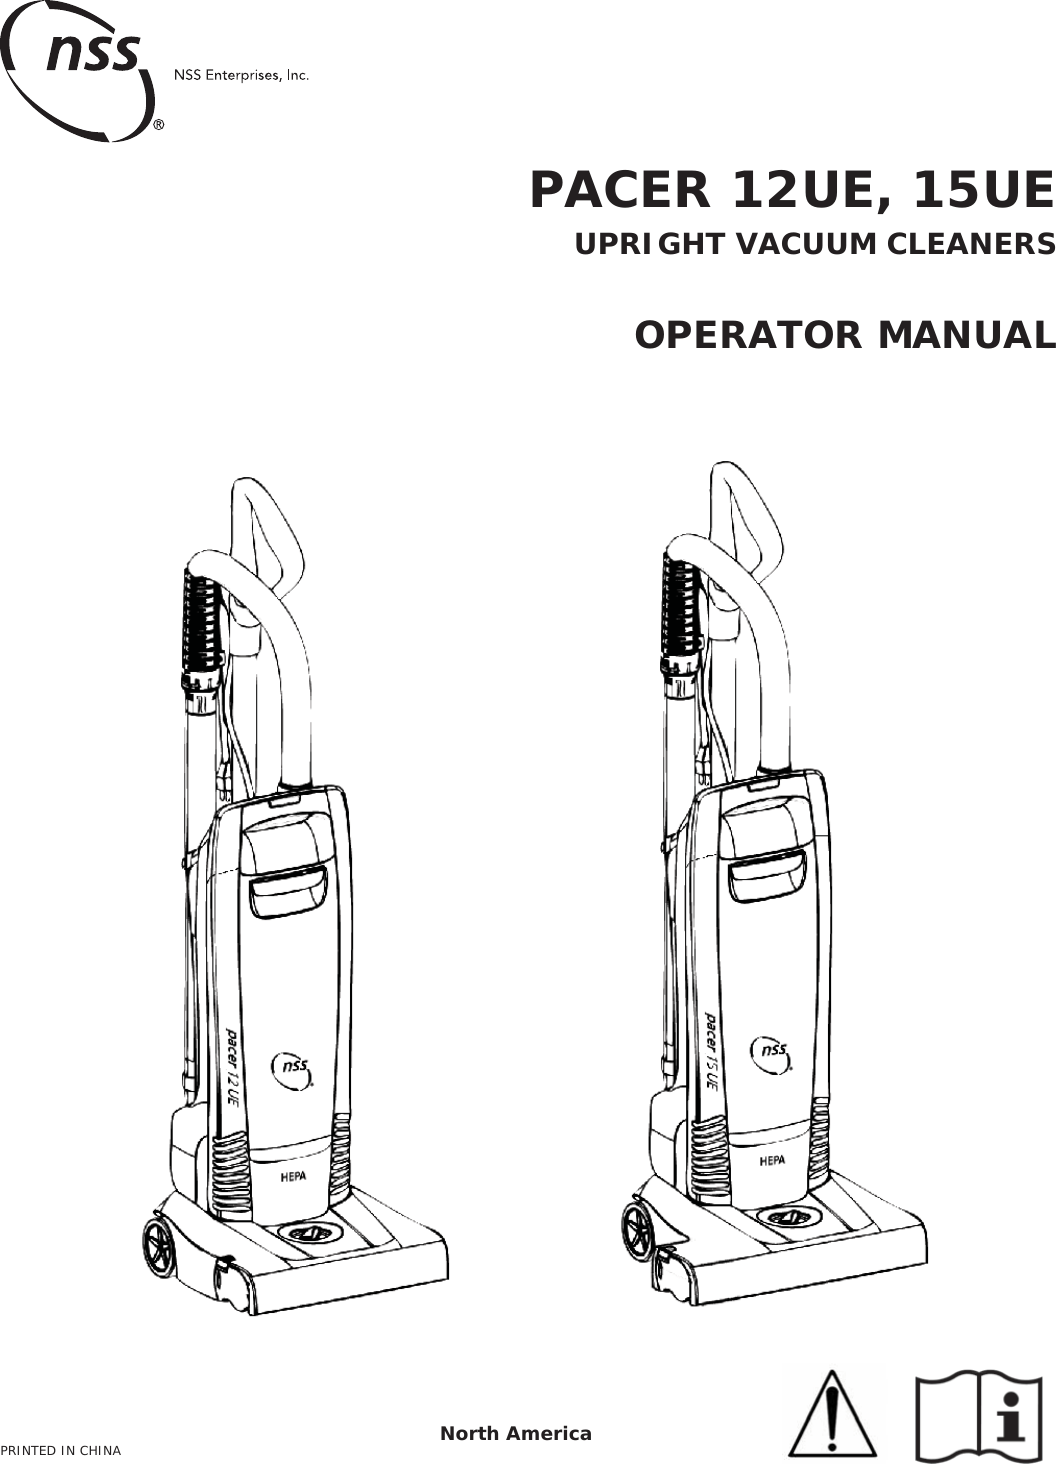 9099600 PACER 12UE 15UE OPERATION MANUAL Nss 12 ue upright